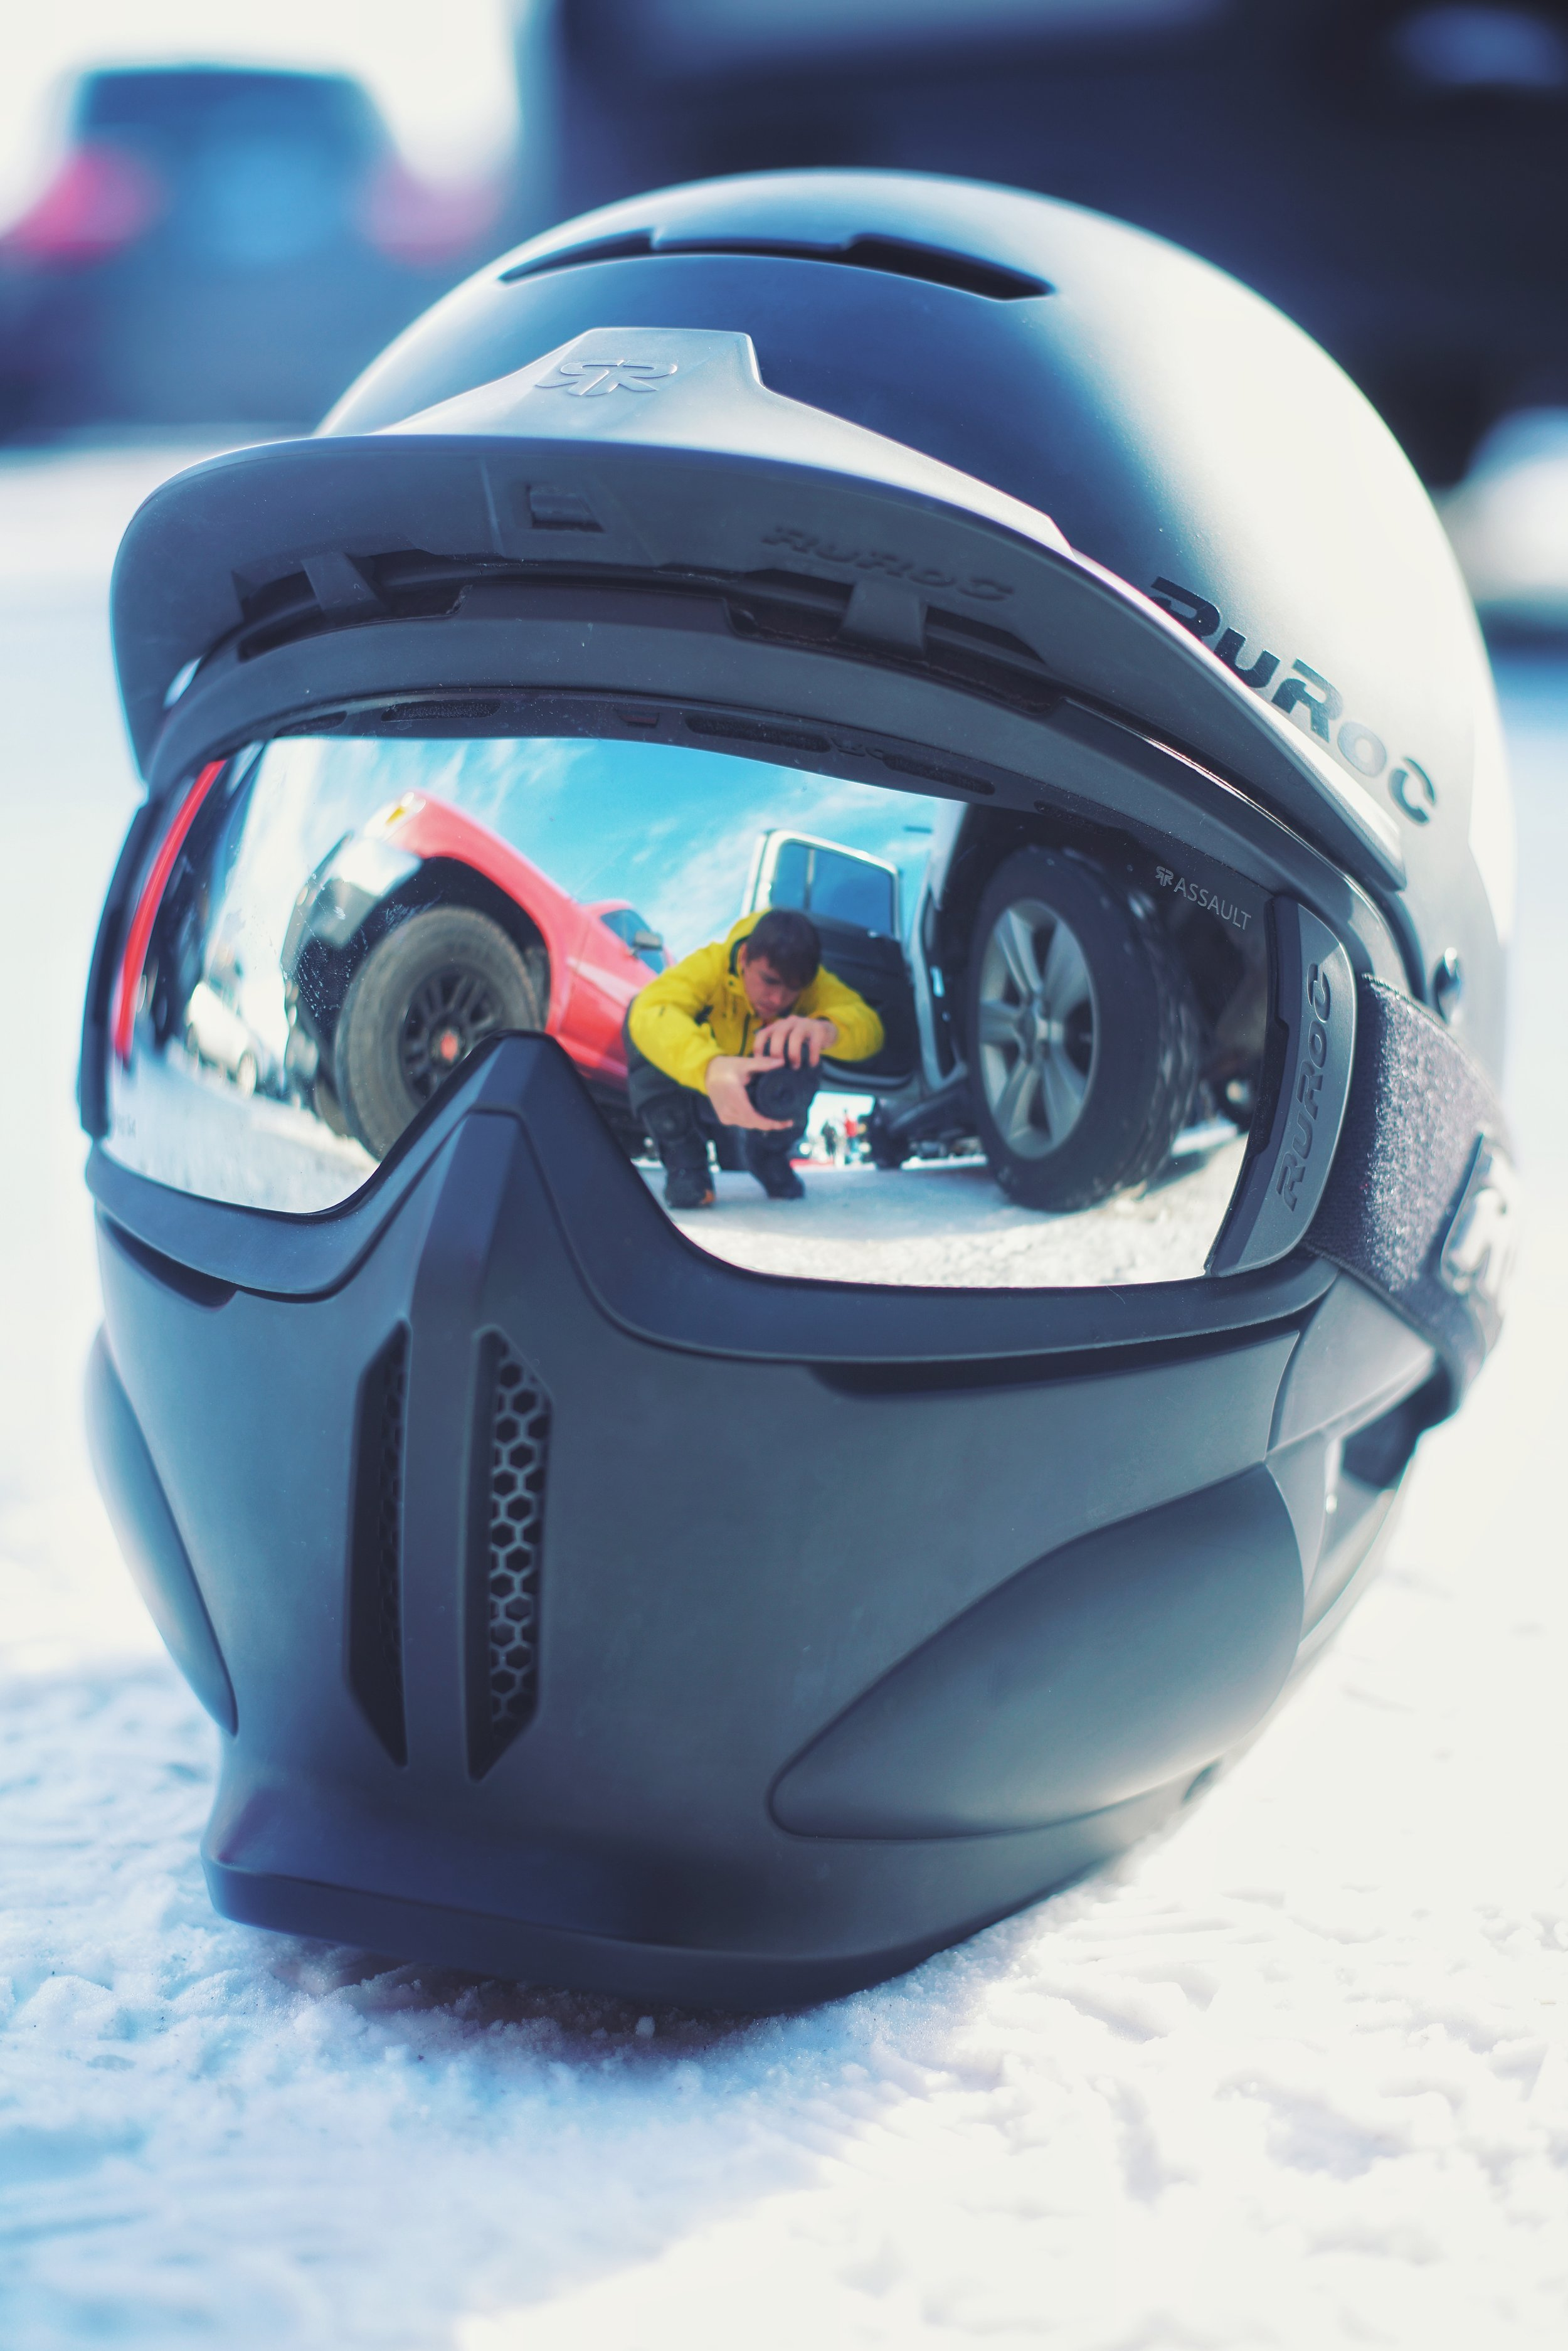 My Ruroc helmet. Looks kinda storm trooper-ish haha. Got it last year to test out and it's been great. Comes with decent goggles too.